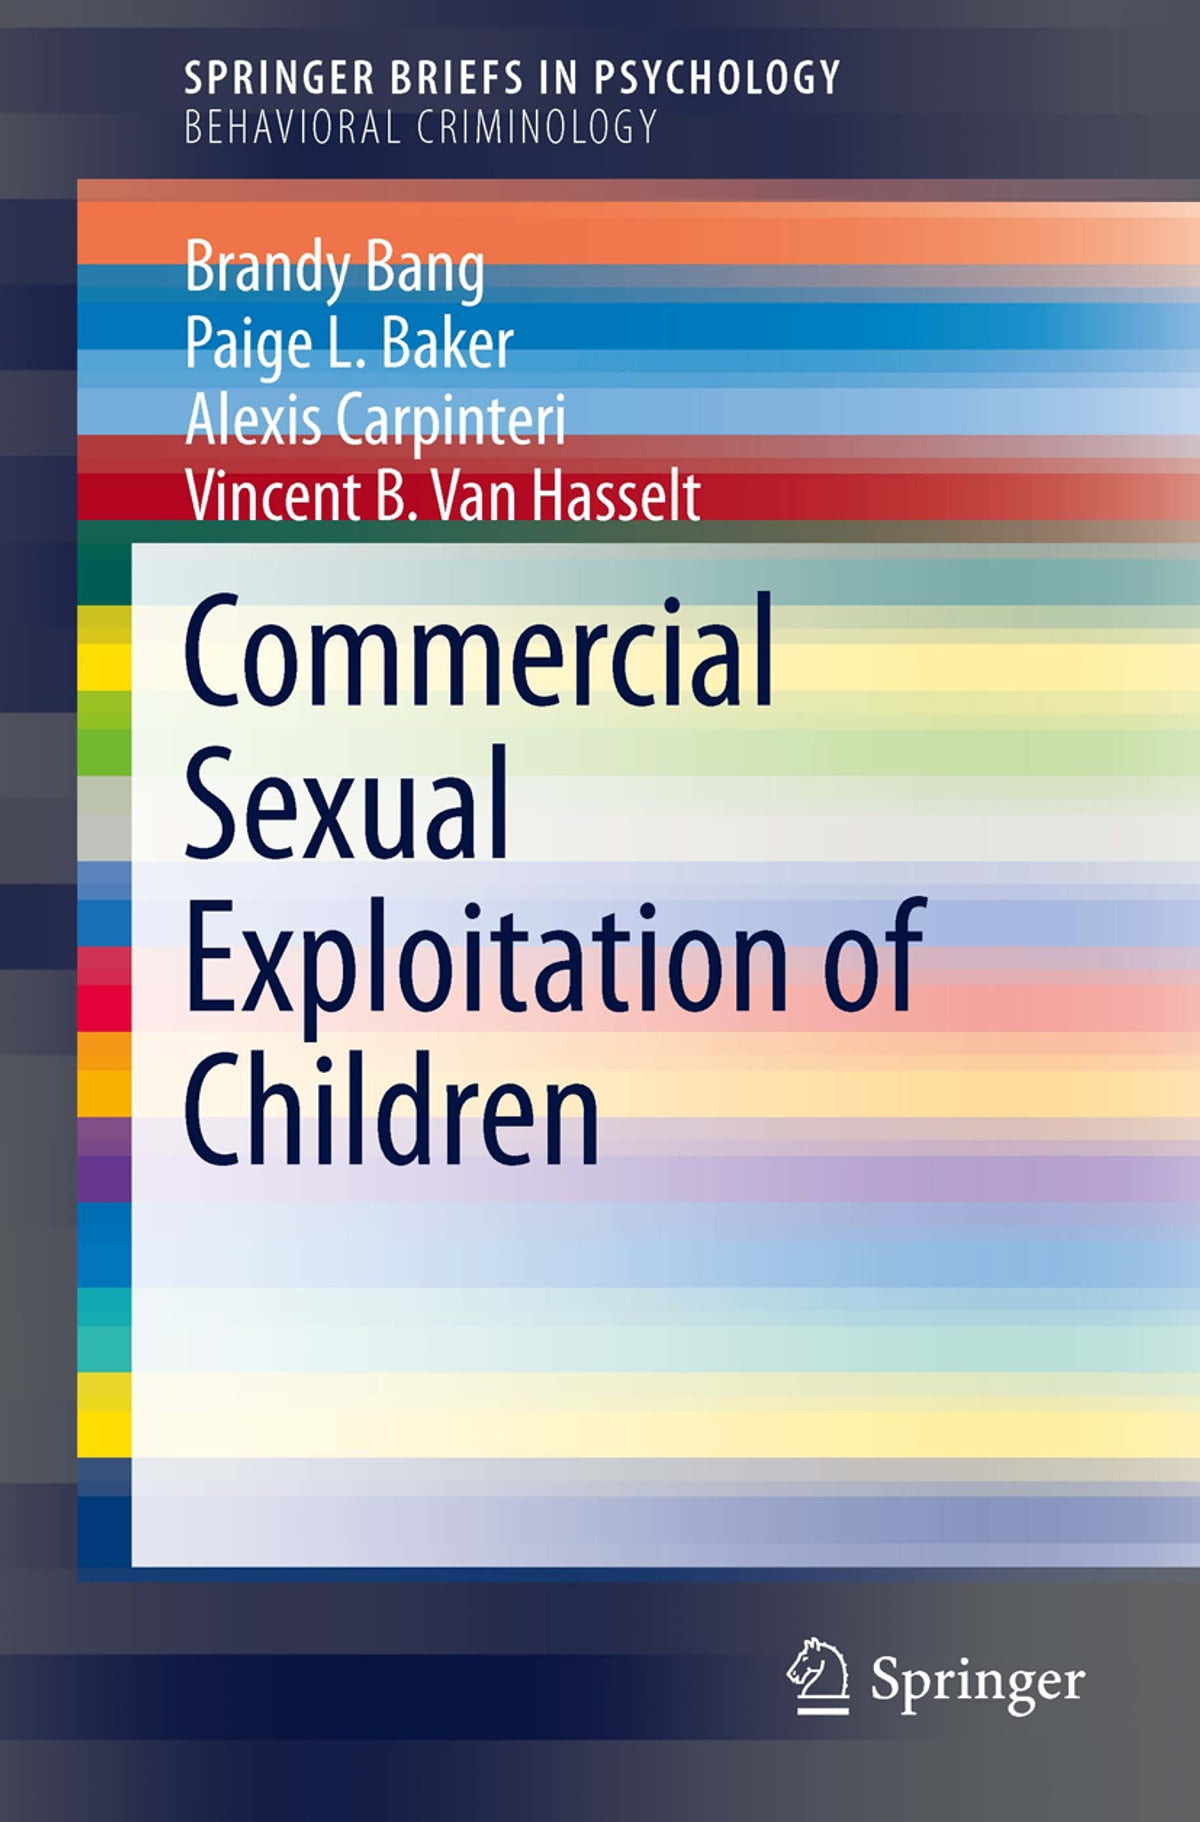 csec mayjune2013 social studies sr The social studies examination is offered to candidates at the june and january administration of the examination the subject continues to attract over fifty thousand registrants for each june sitting.